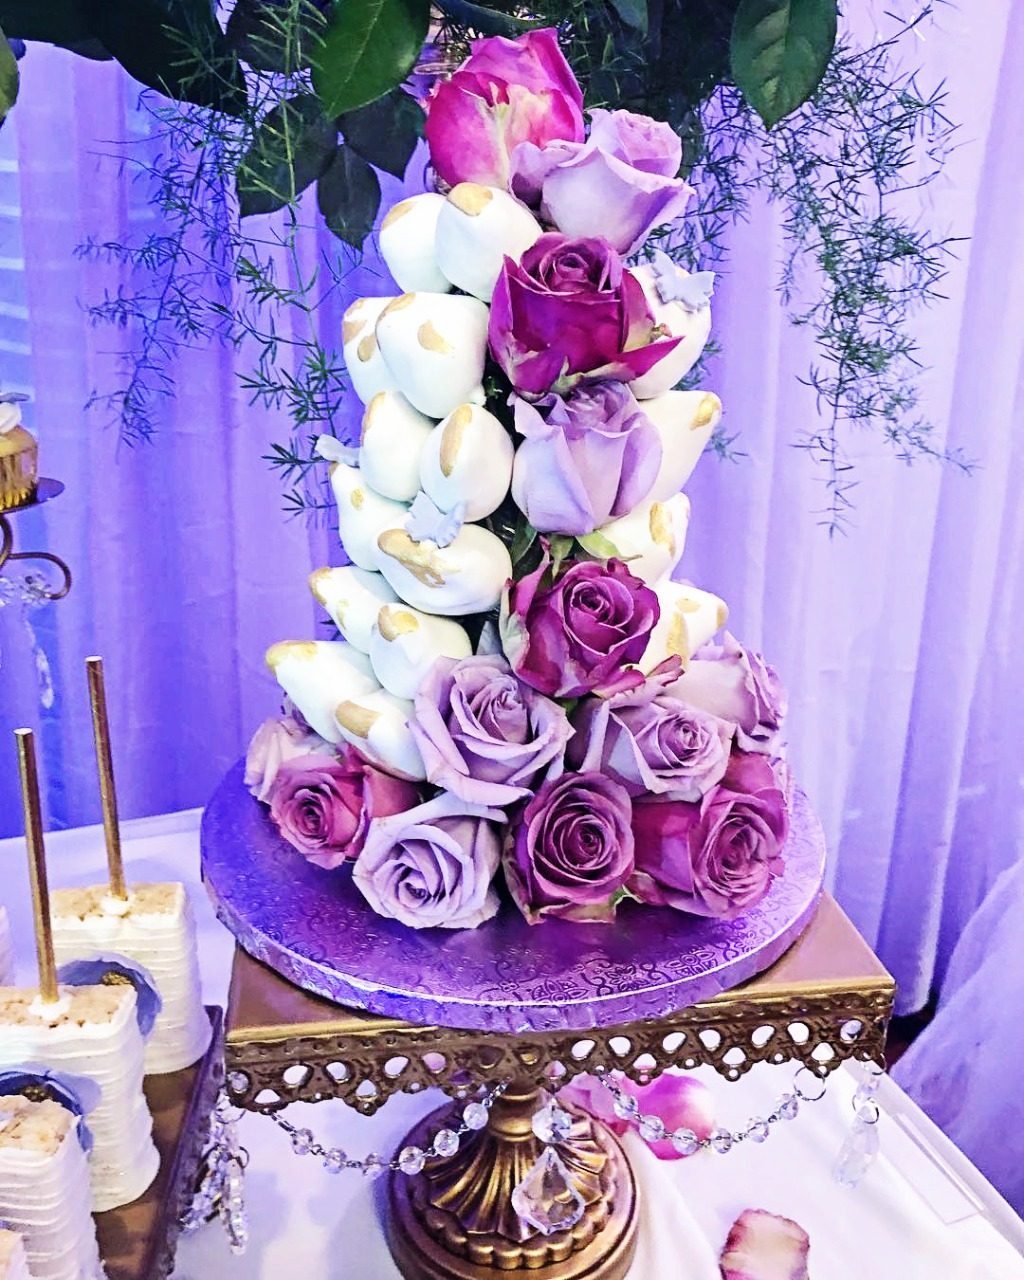 Dipped Strawberry & Roses Tower by Steph's Sweet Creations on Opulent Treasures Antique Gold Chandelier Cake Stand